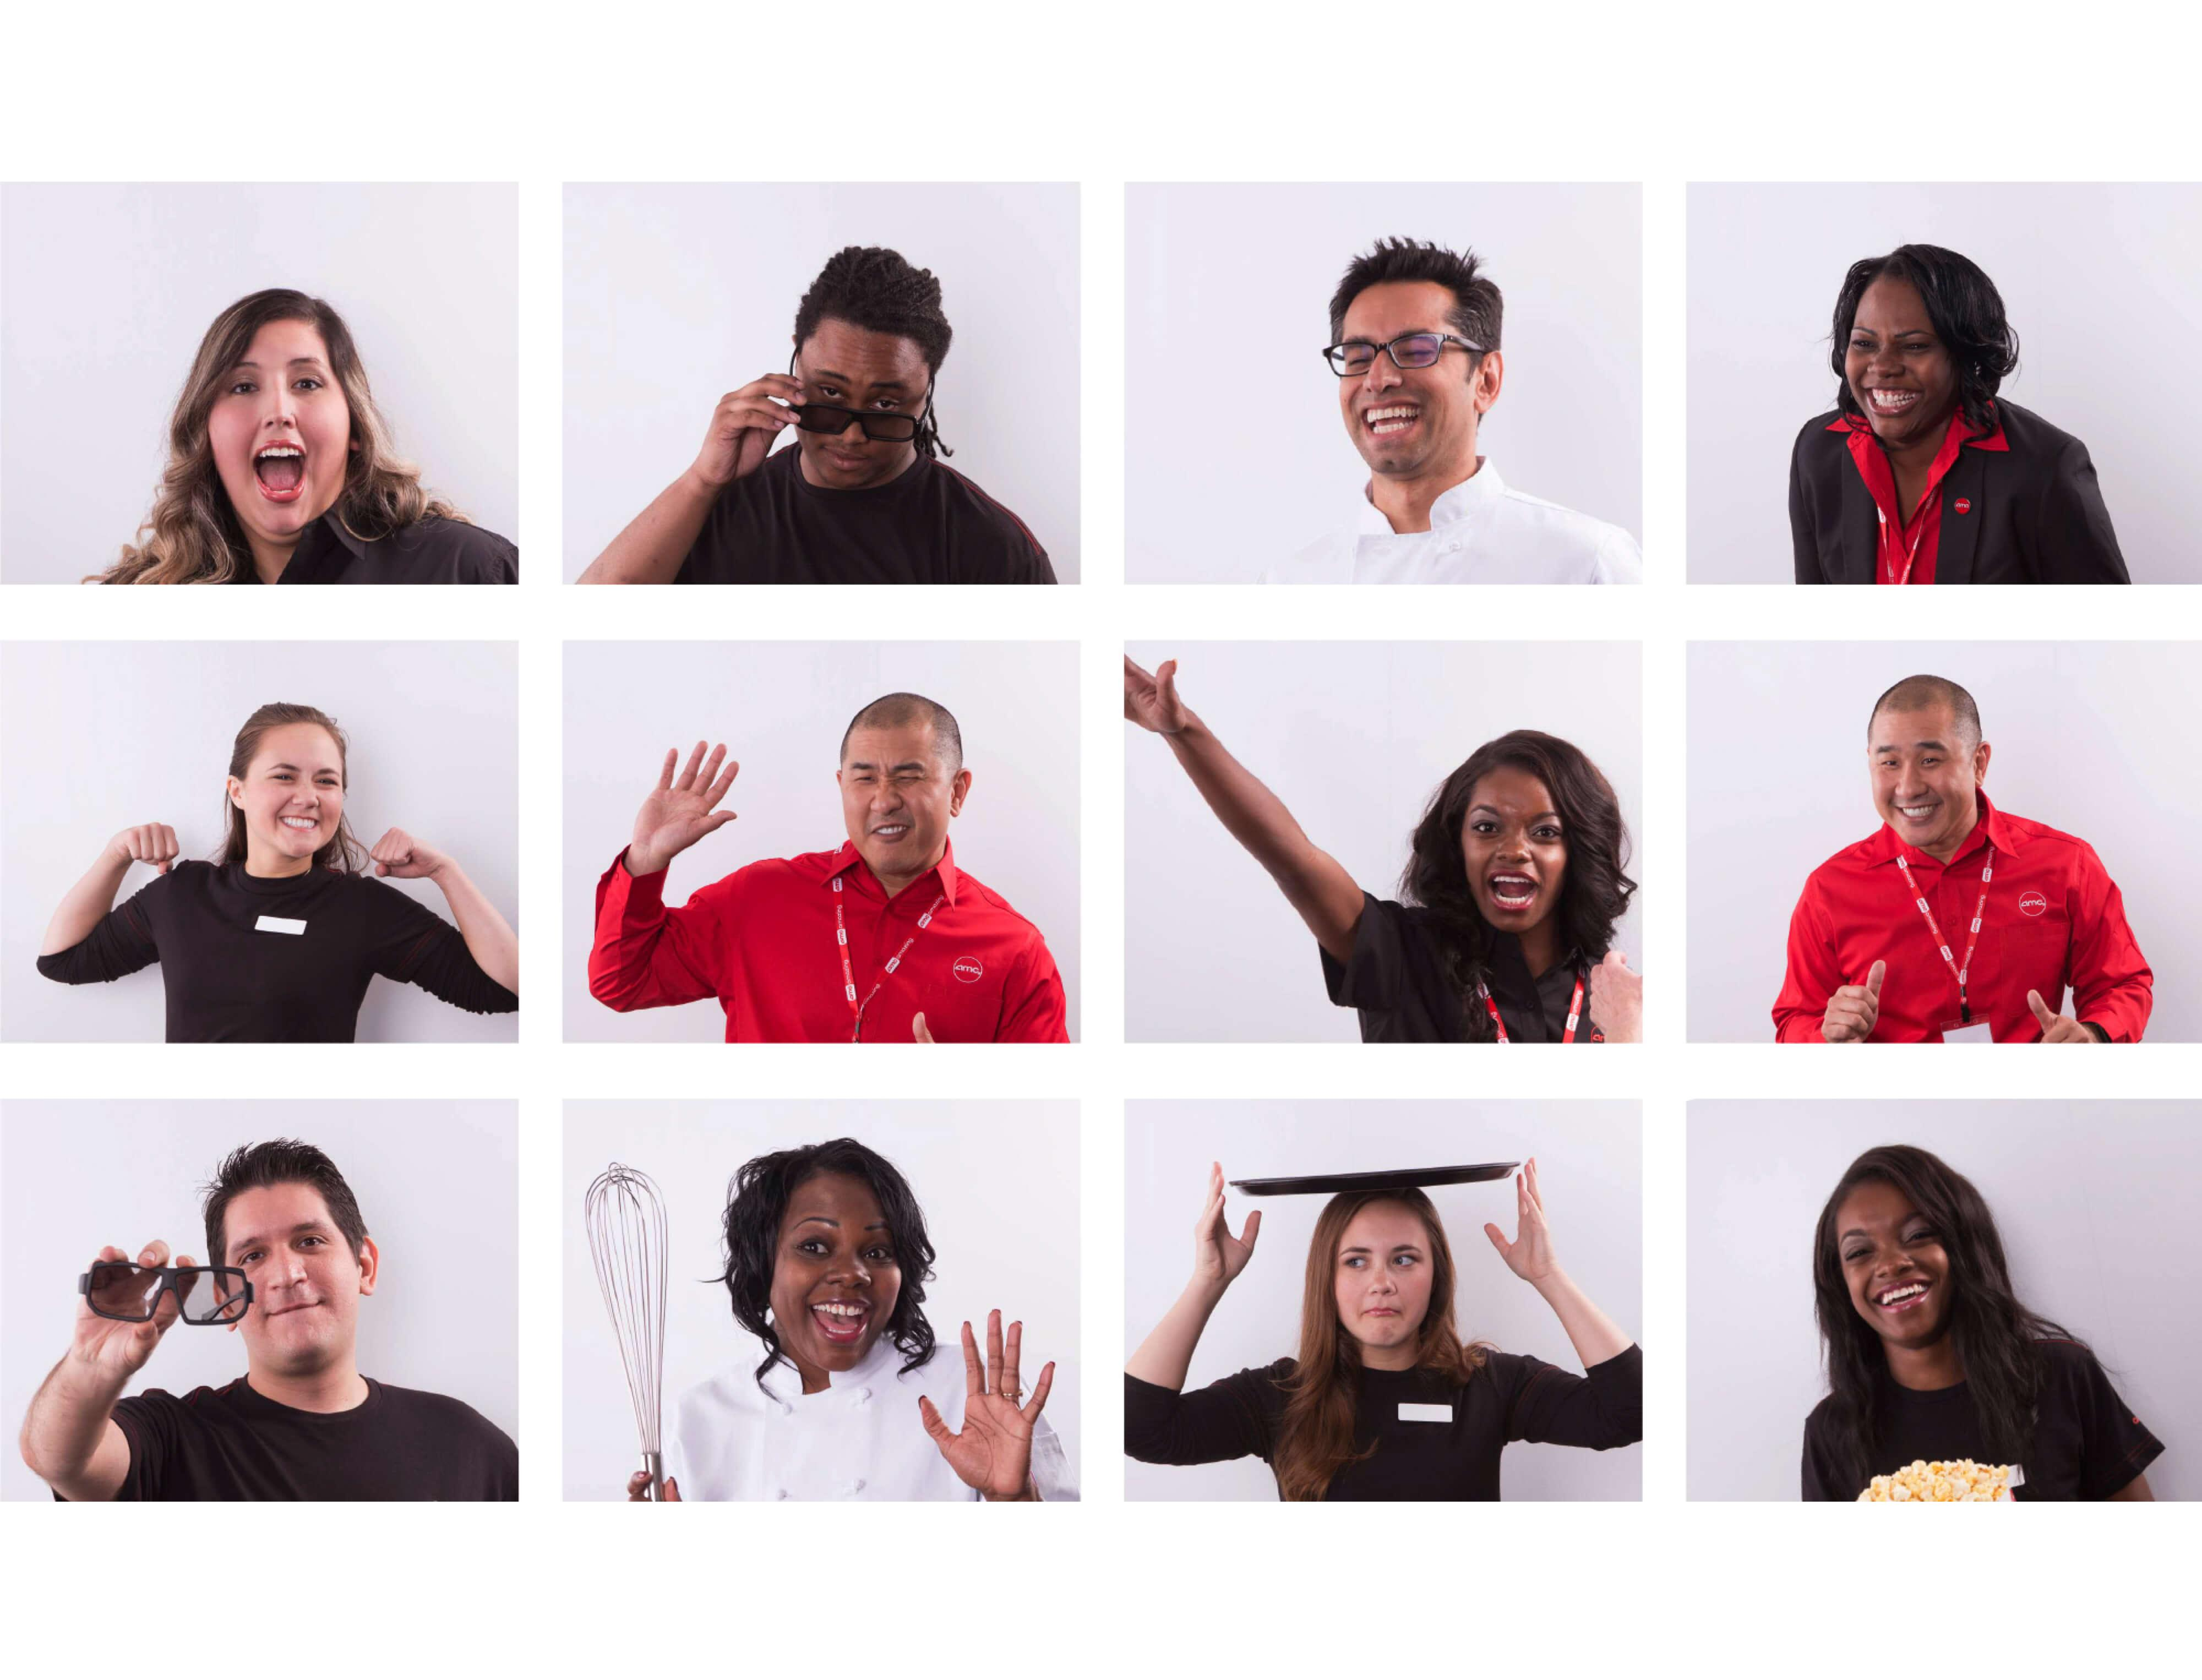 AMC Theaters employee photoshoot examples